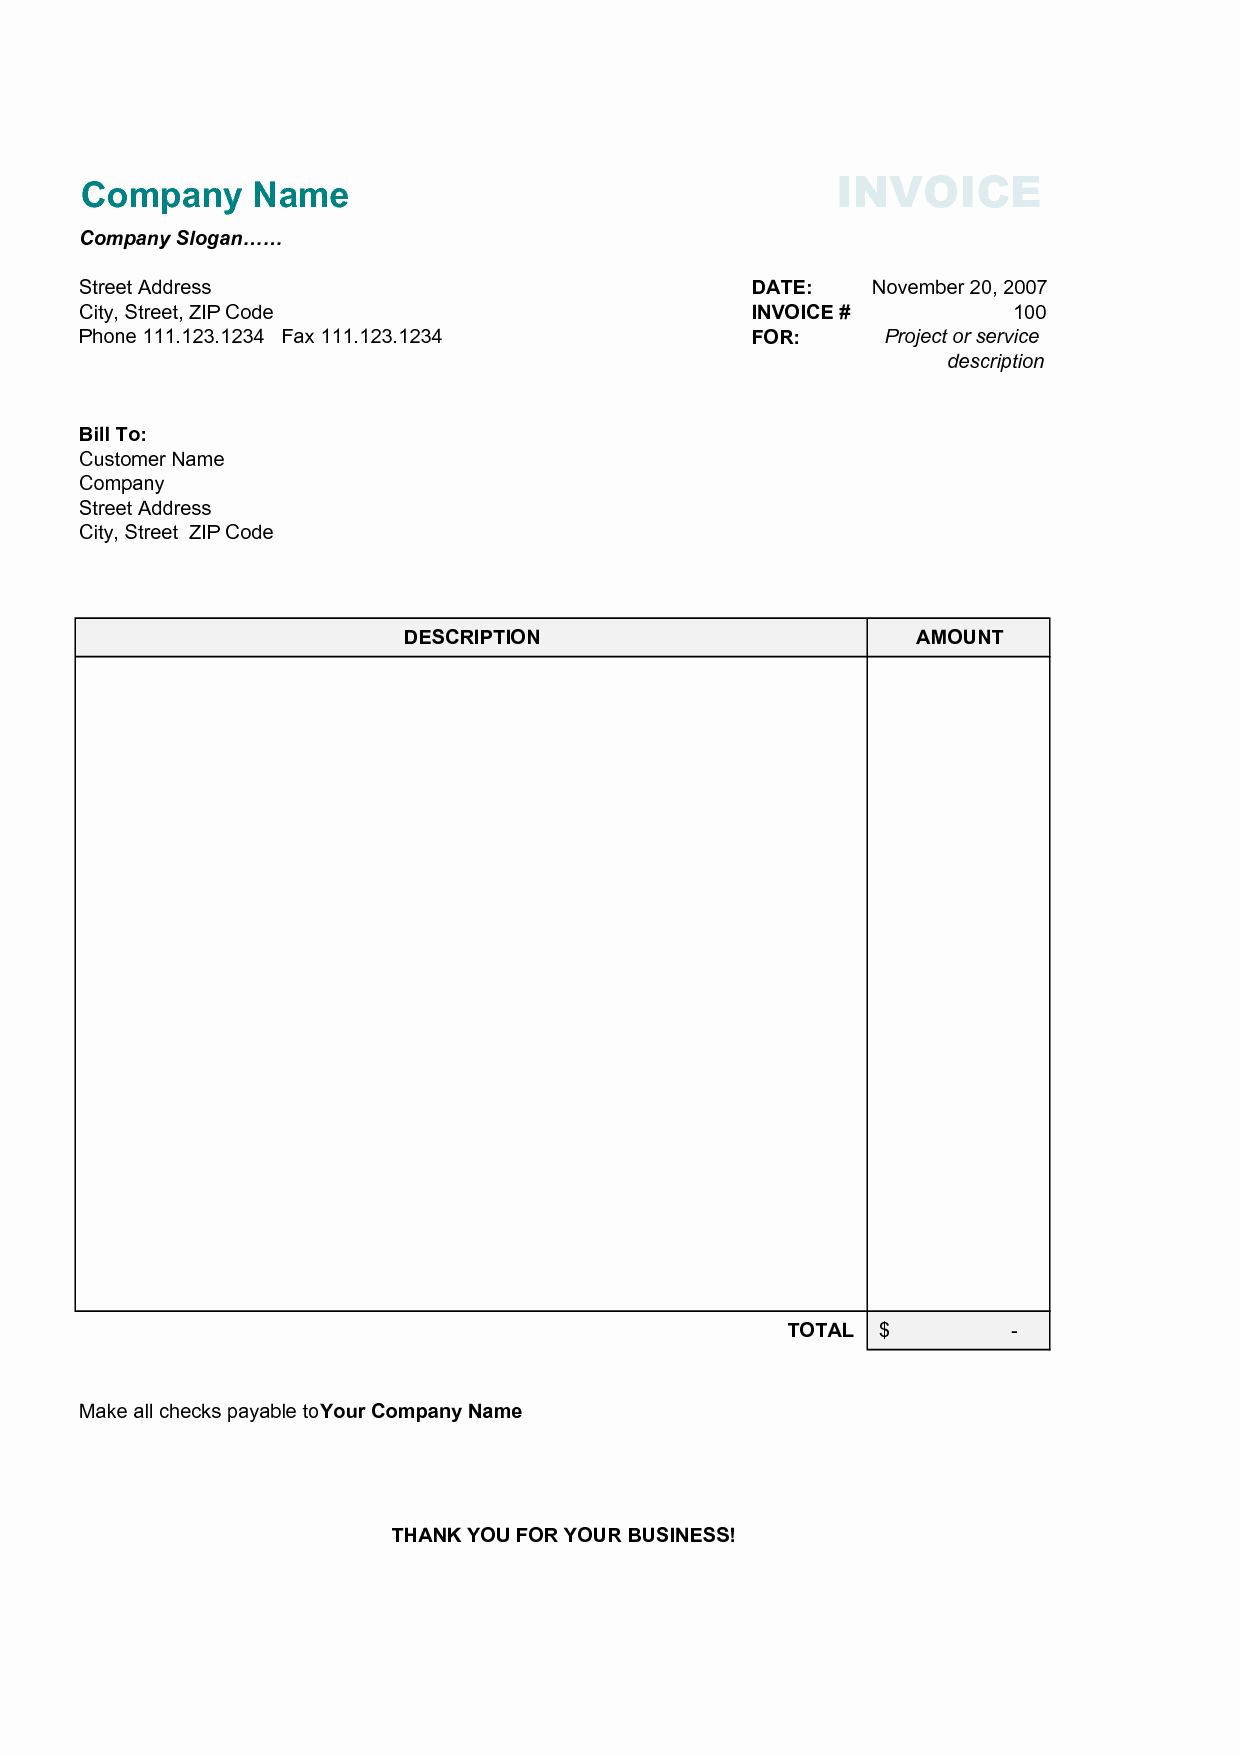 Free Business Invoice Template Unique Invoice Template Category Page 1 Efoza